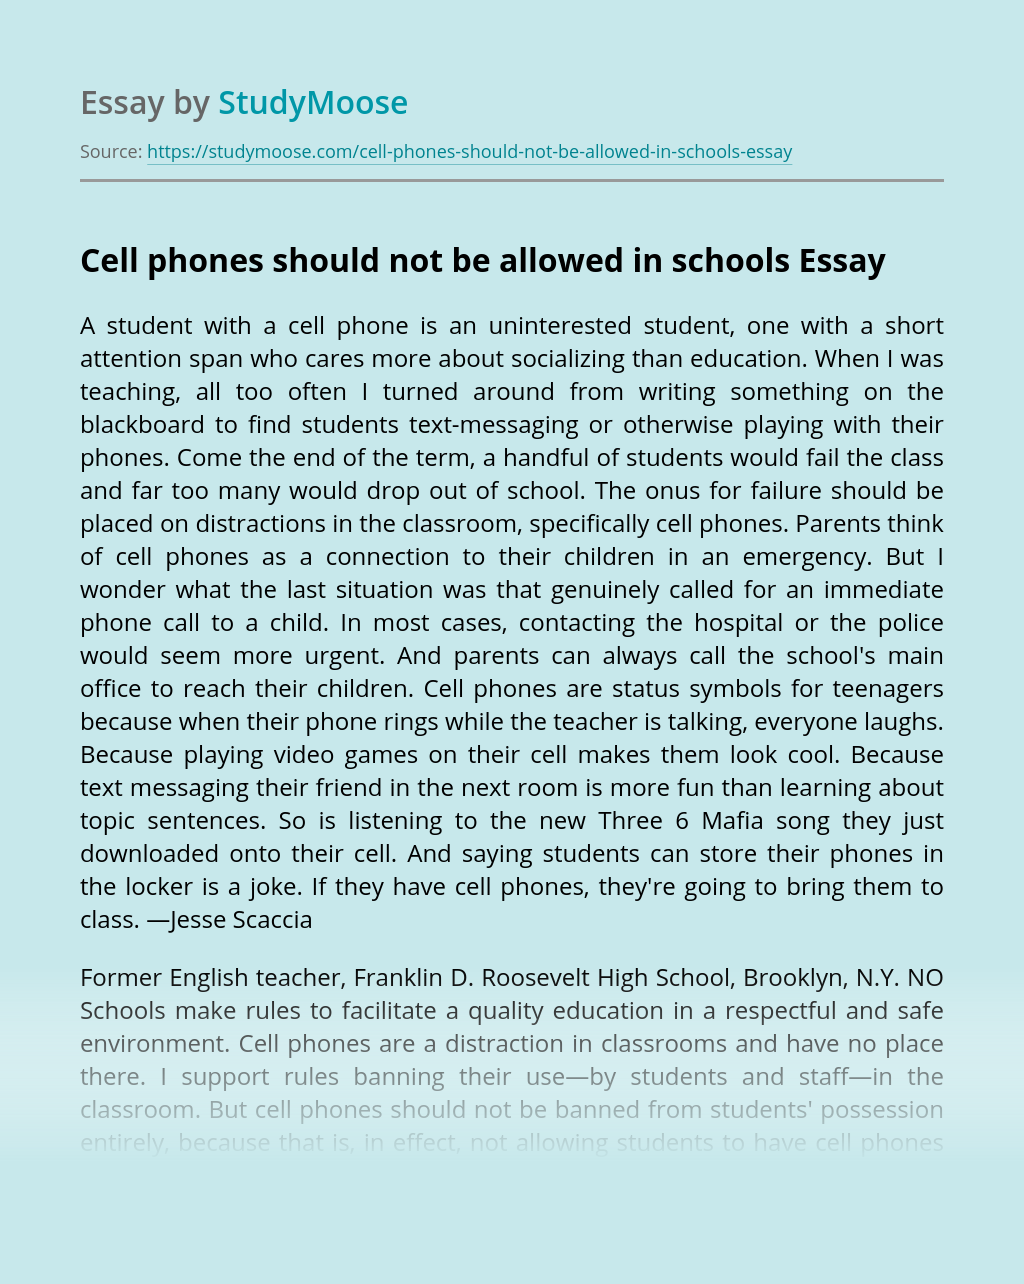 Cell phones should not be allowed in schools